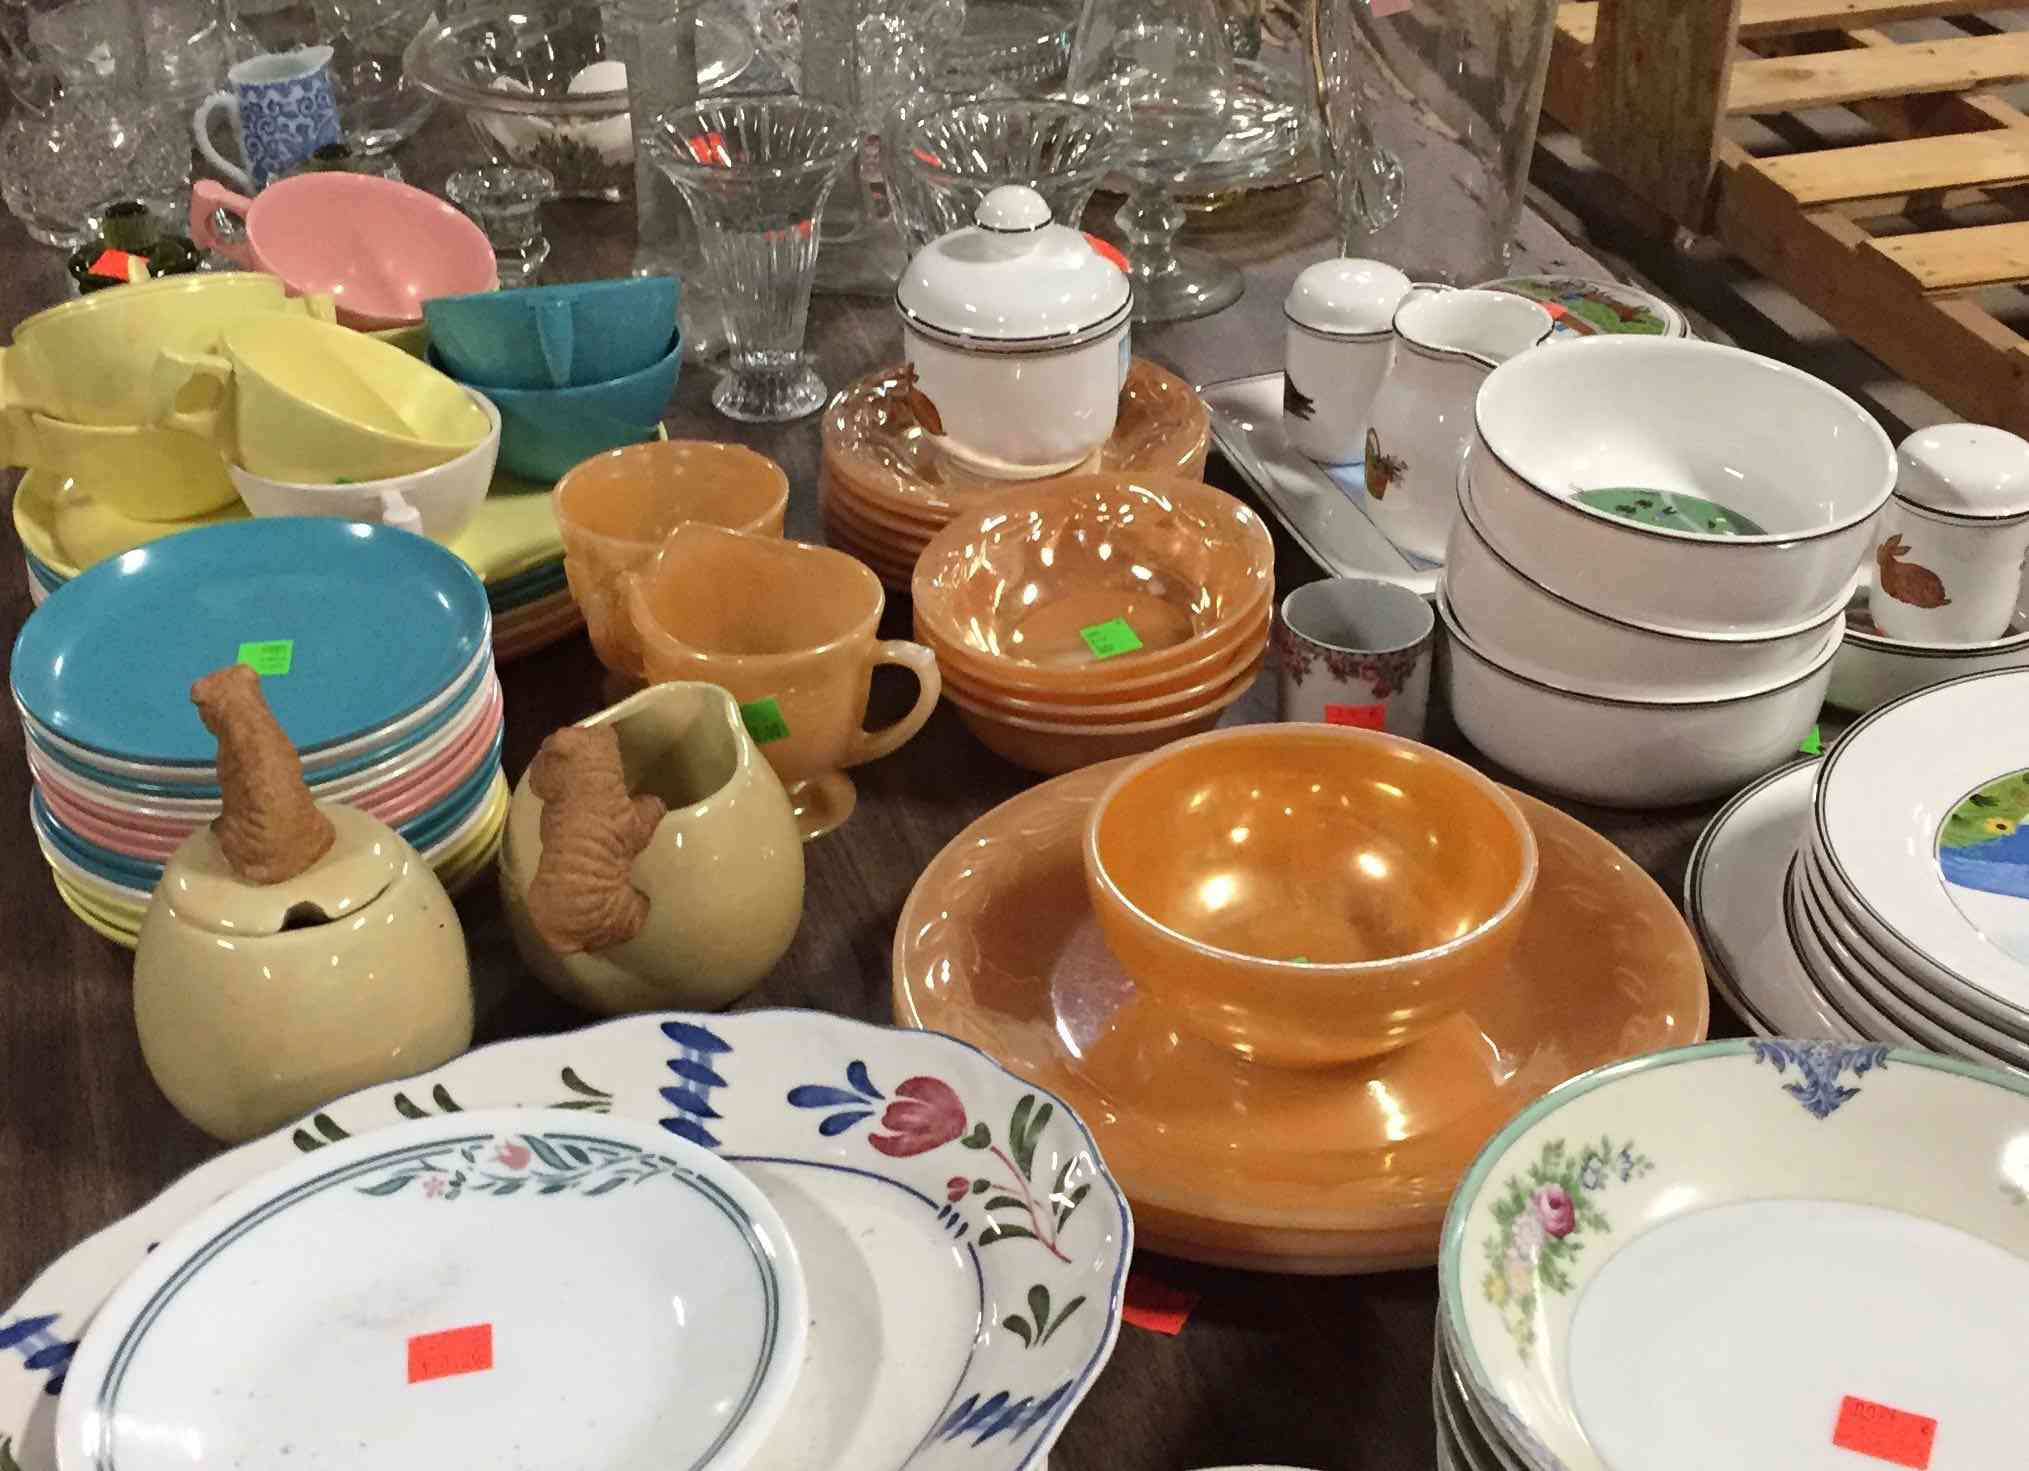 dishes, thrift store